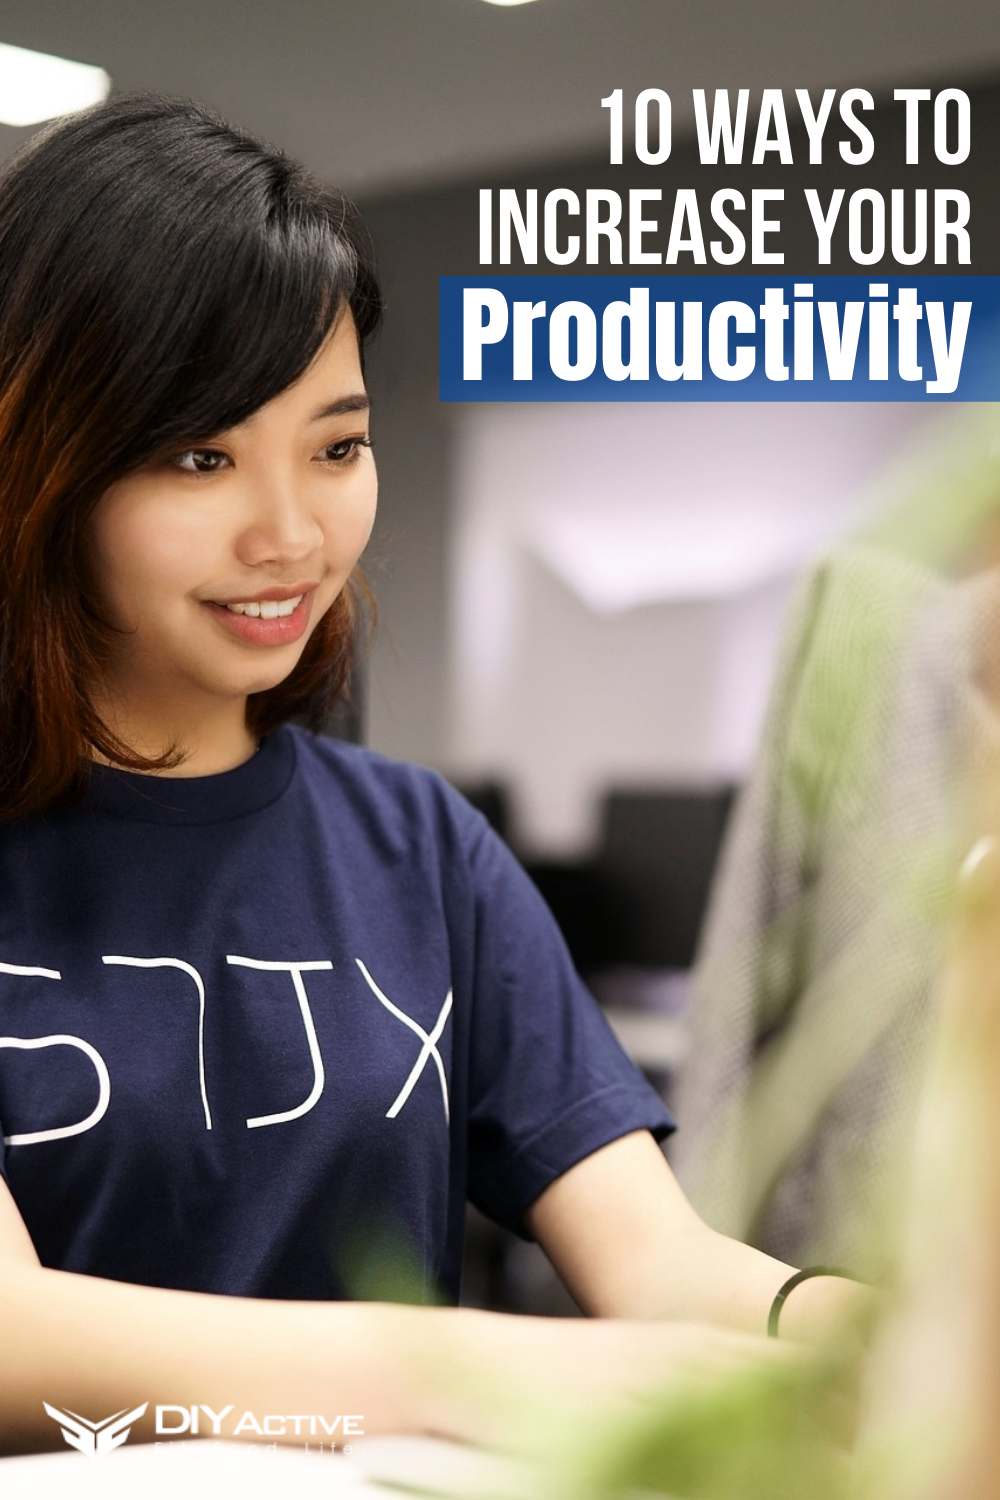 10 Ways to Increase Productivity at Work